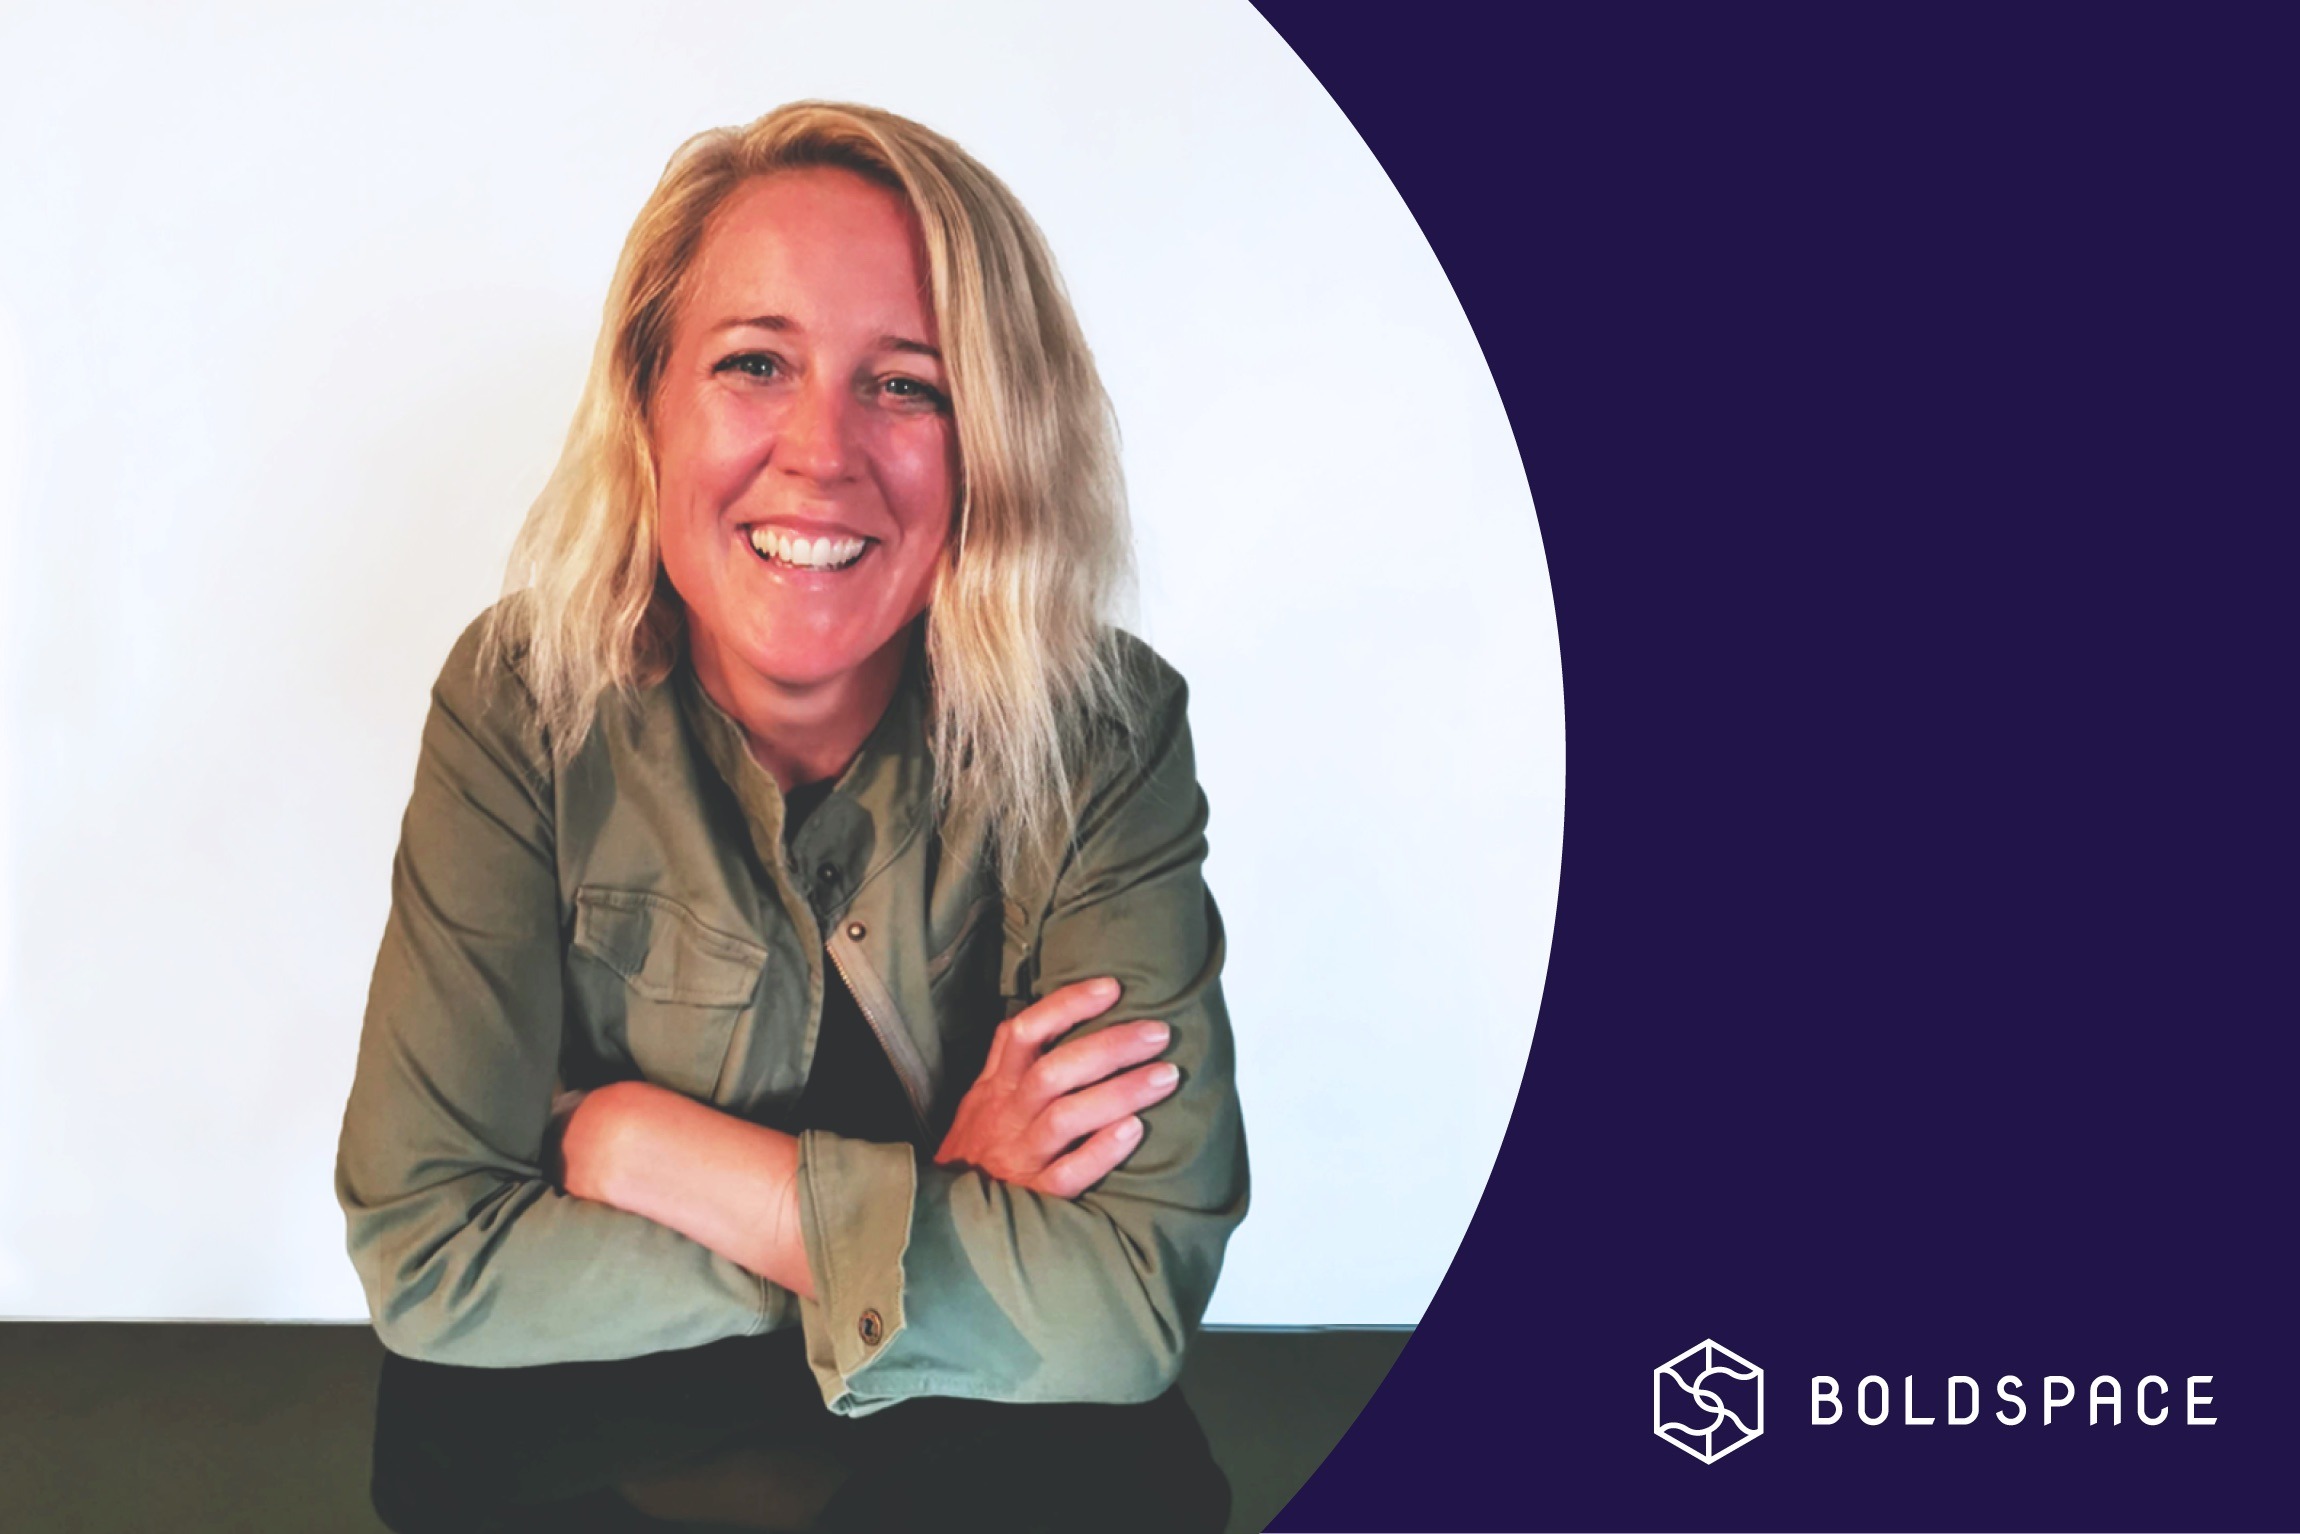 Boldspace Hires Steph Bailey To Lead Communications